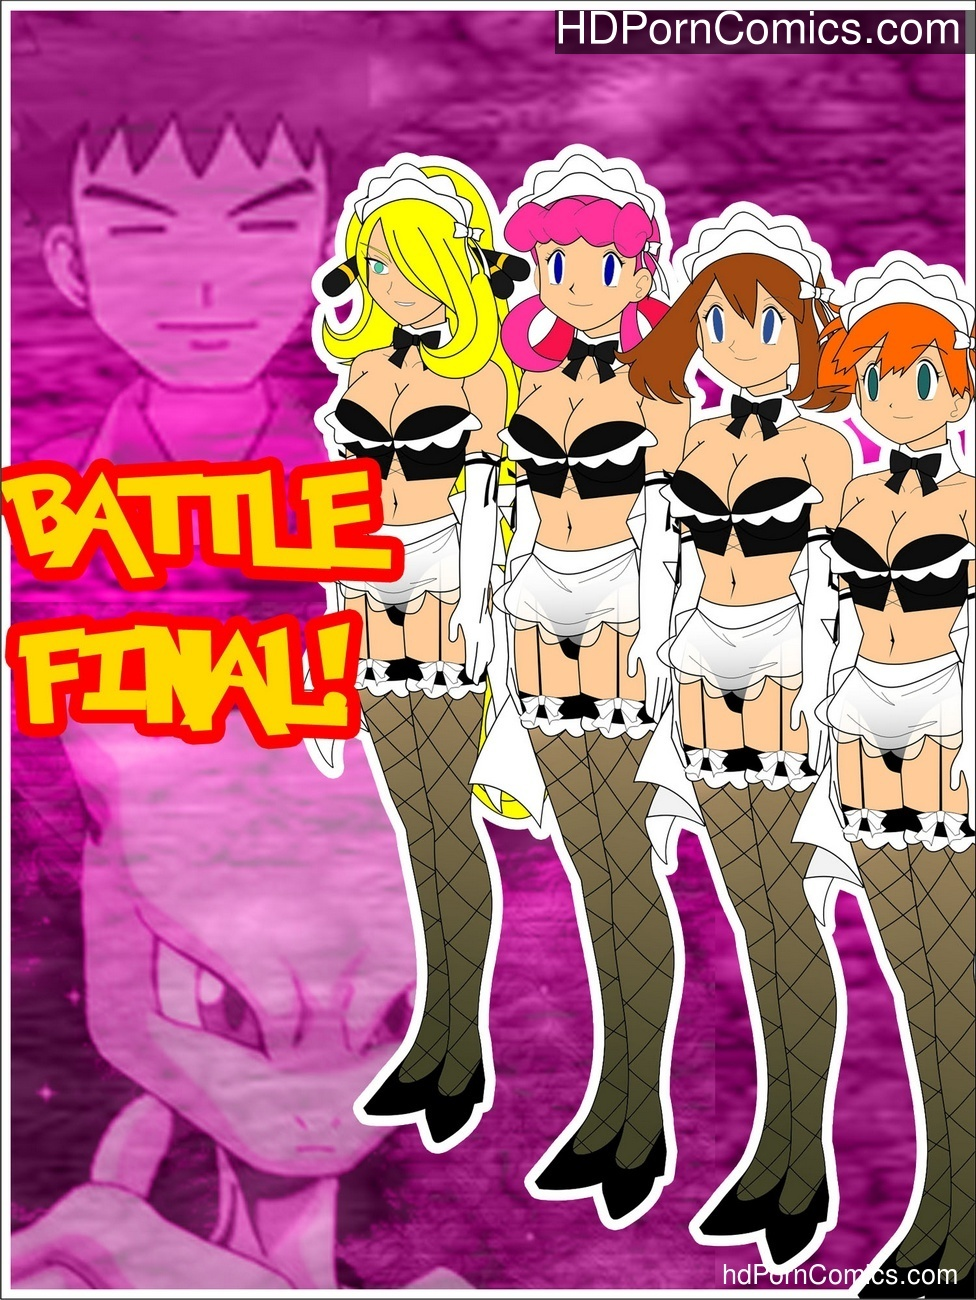 Battle Final! 1 Pokemon Porn Comics